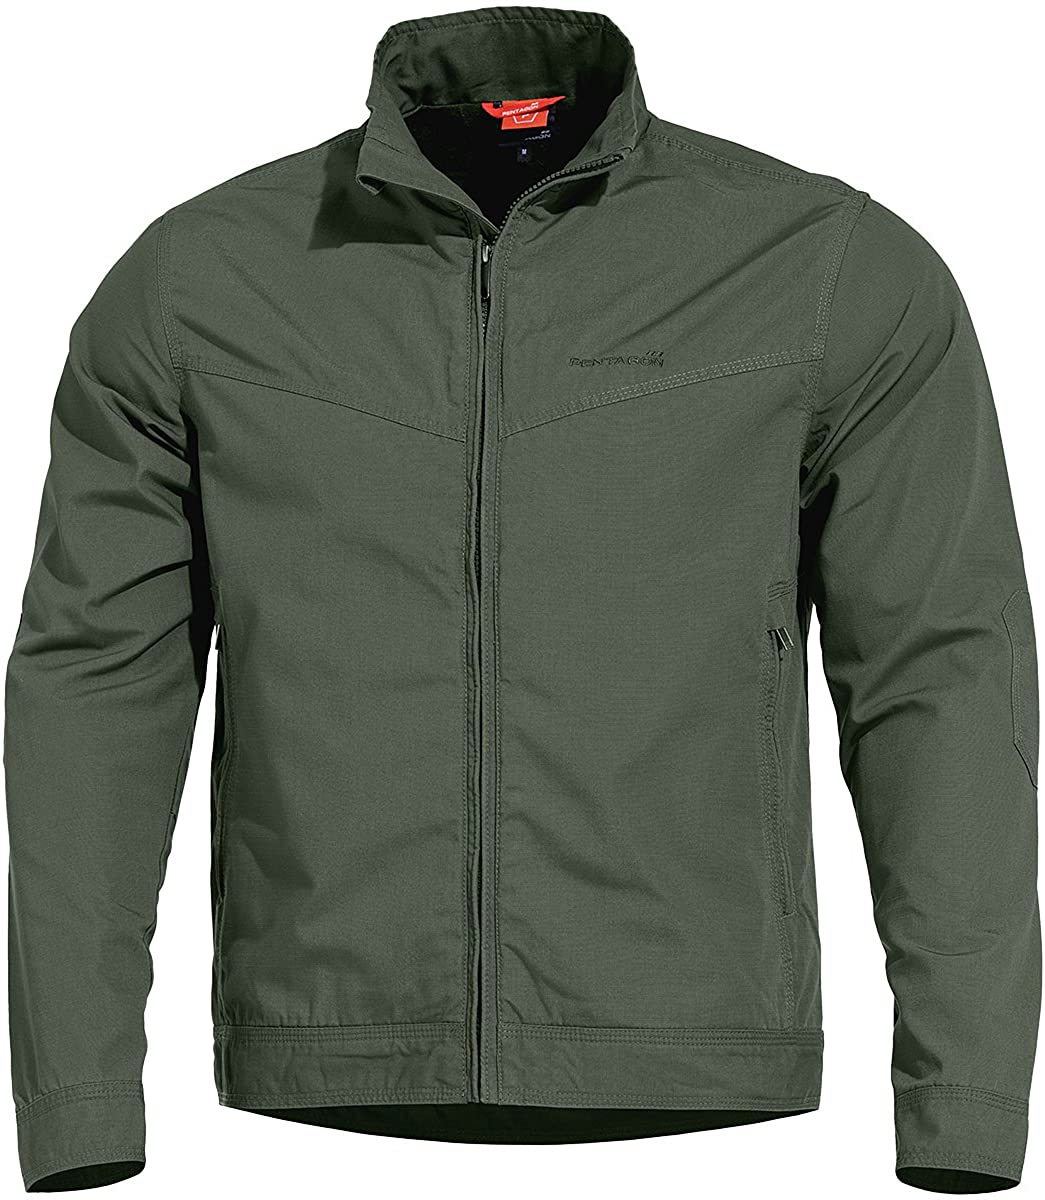 Pentagon Men's Nostalgia Jacket Ripstop Camo Green